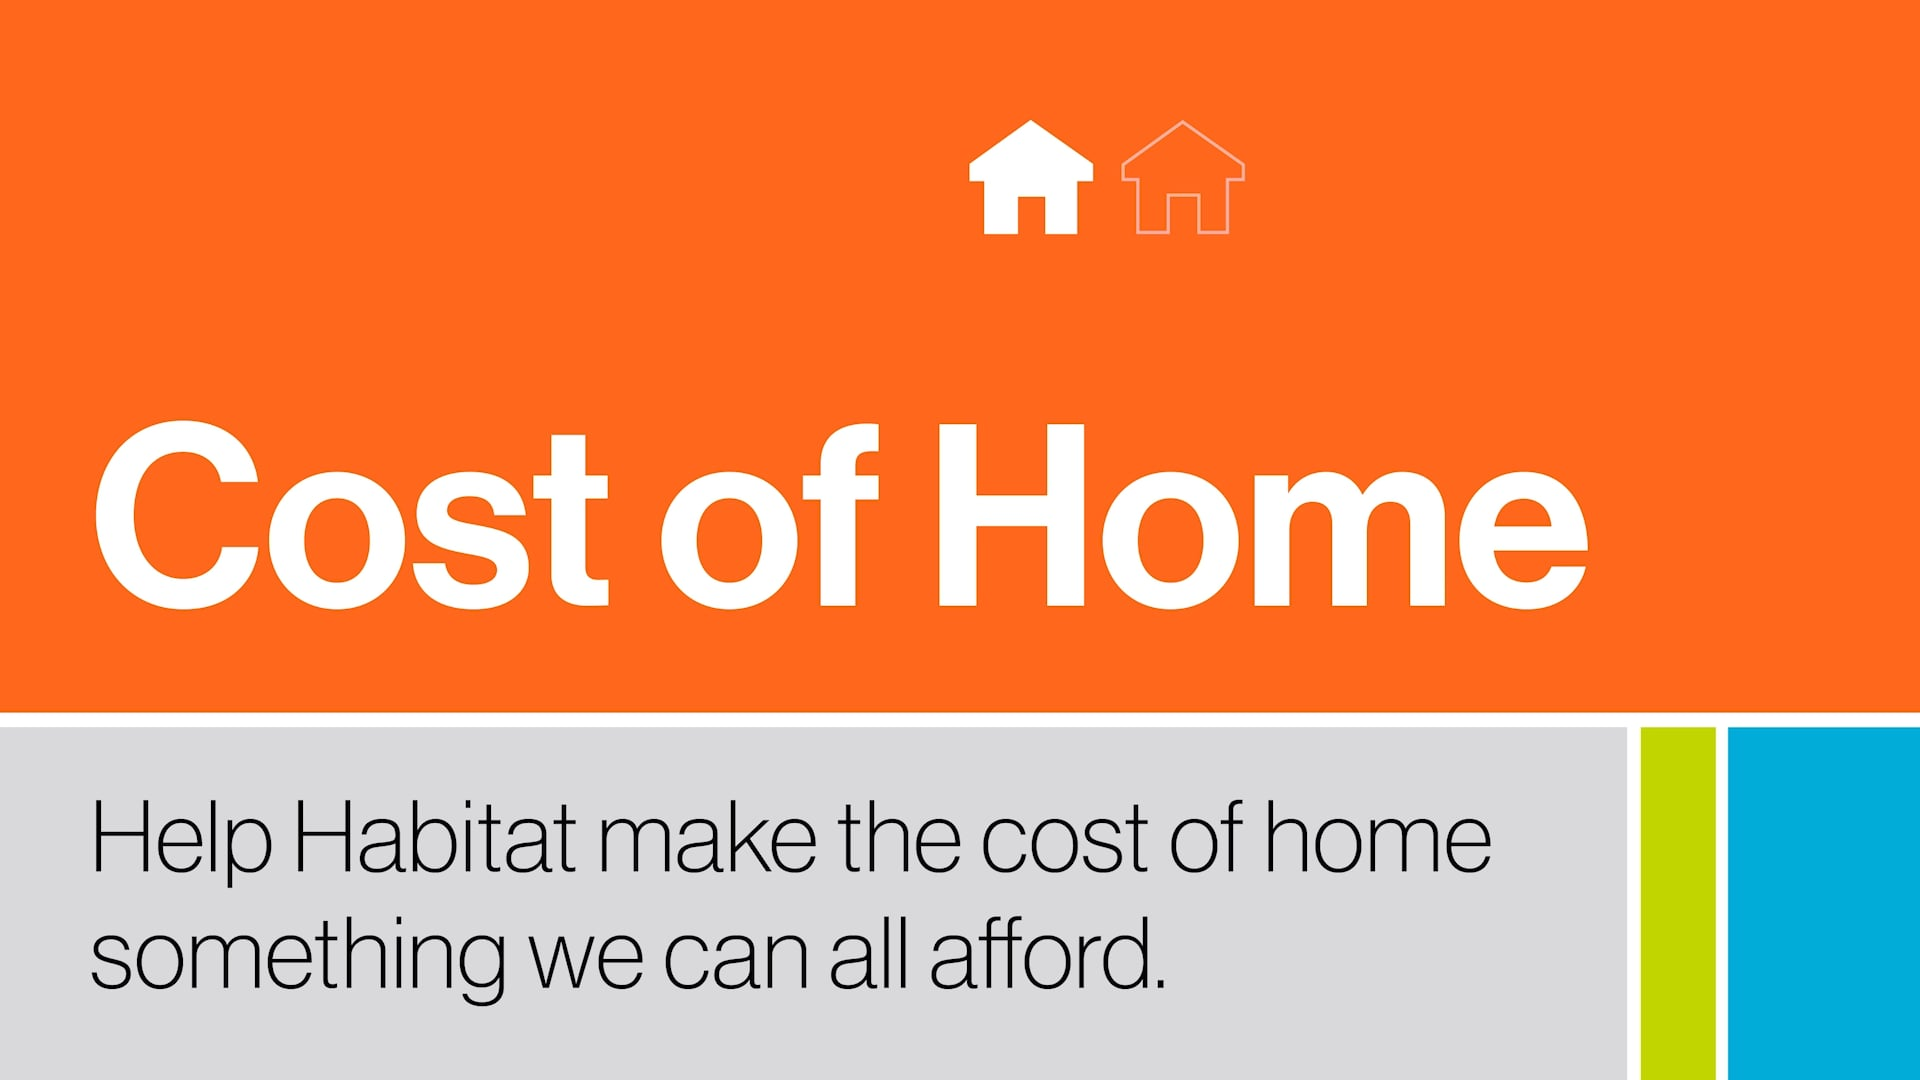 Cost of Home